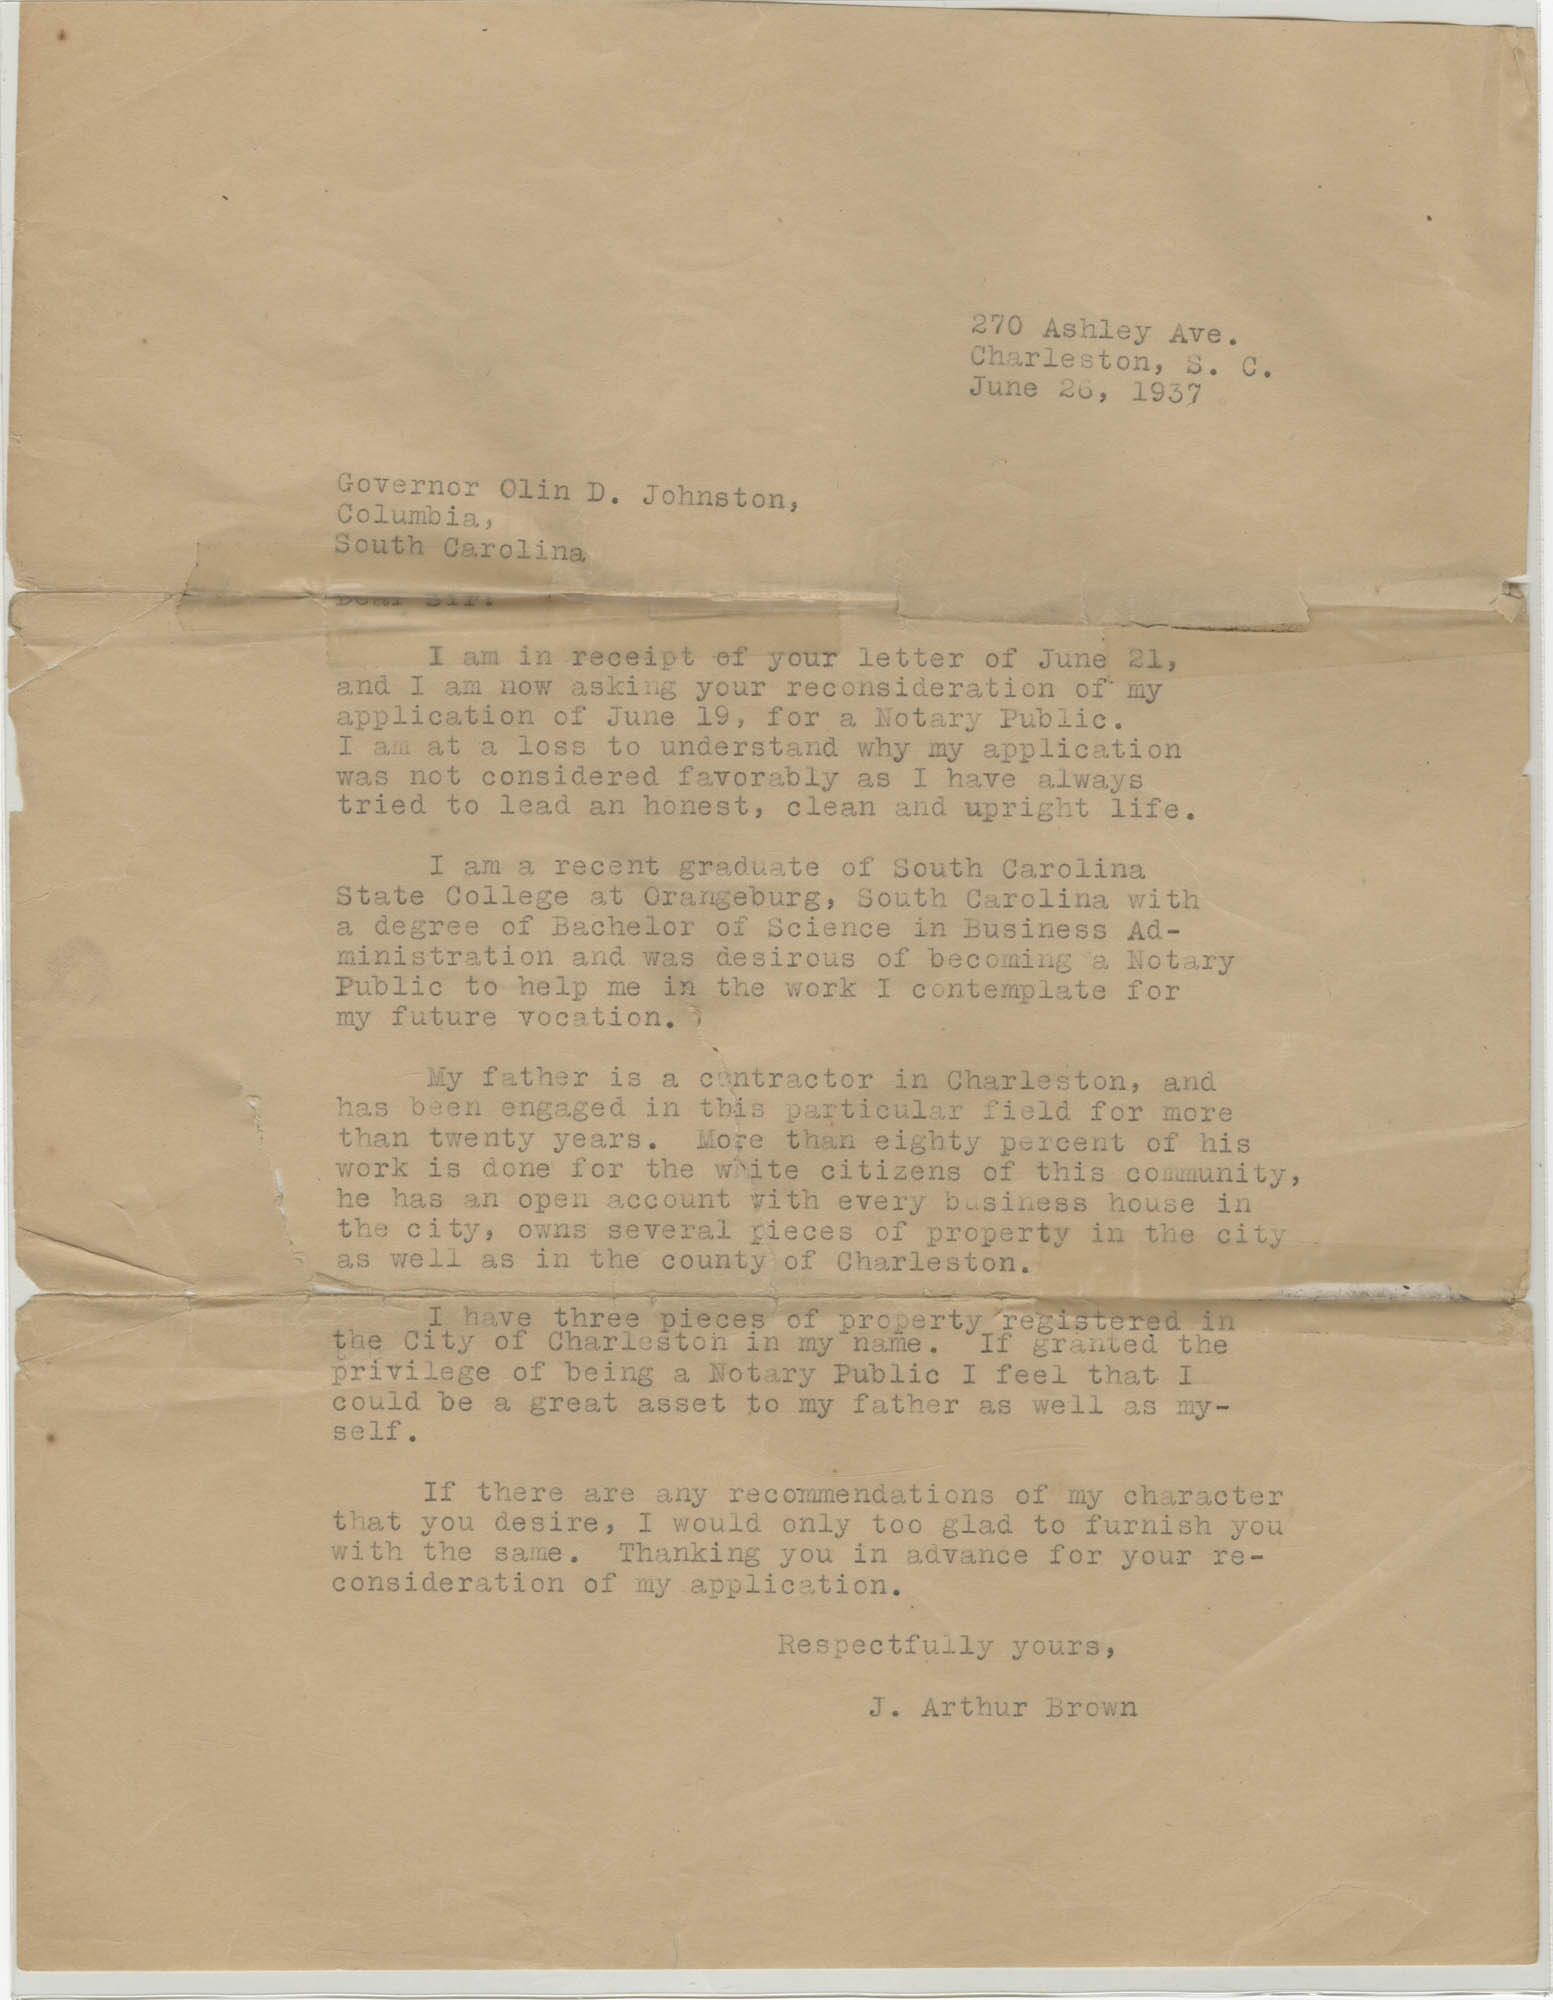 Letter from J. Arthur Brown to Olin D. Johnston, June 26, 1937